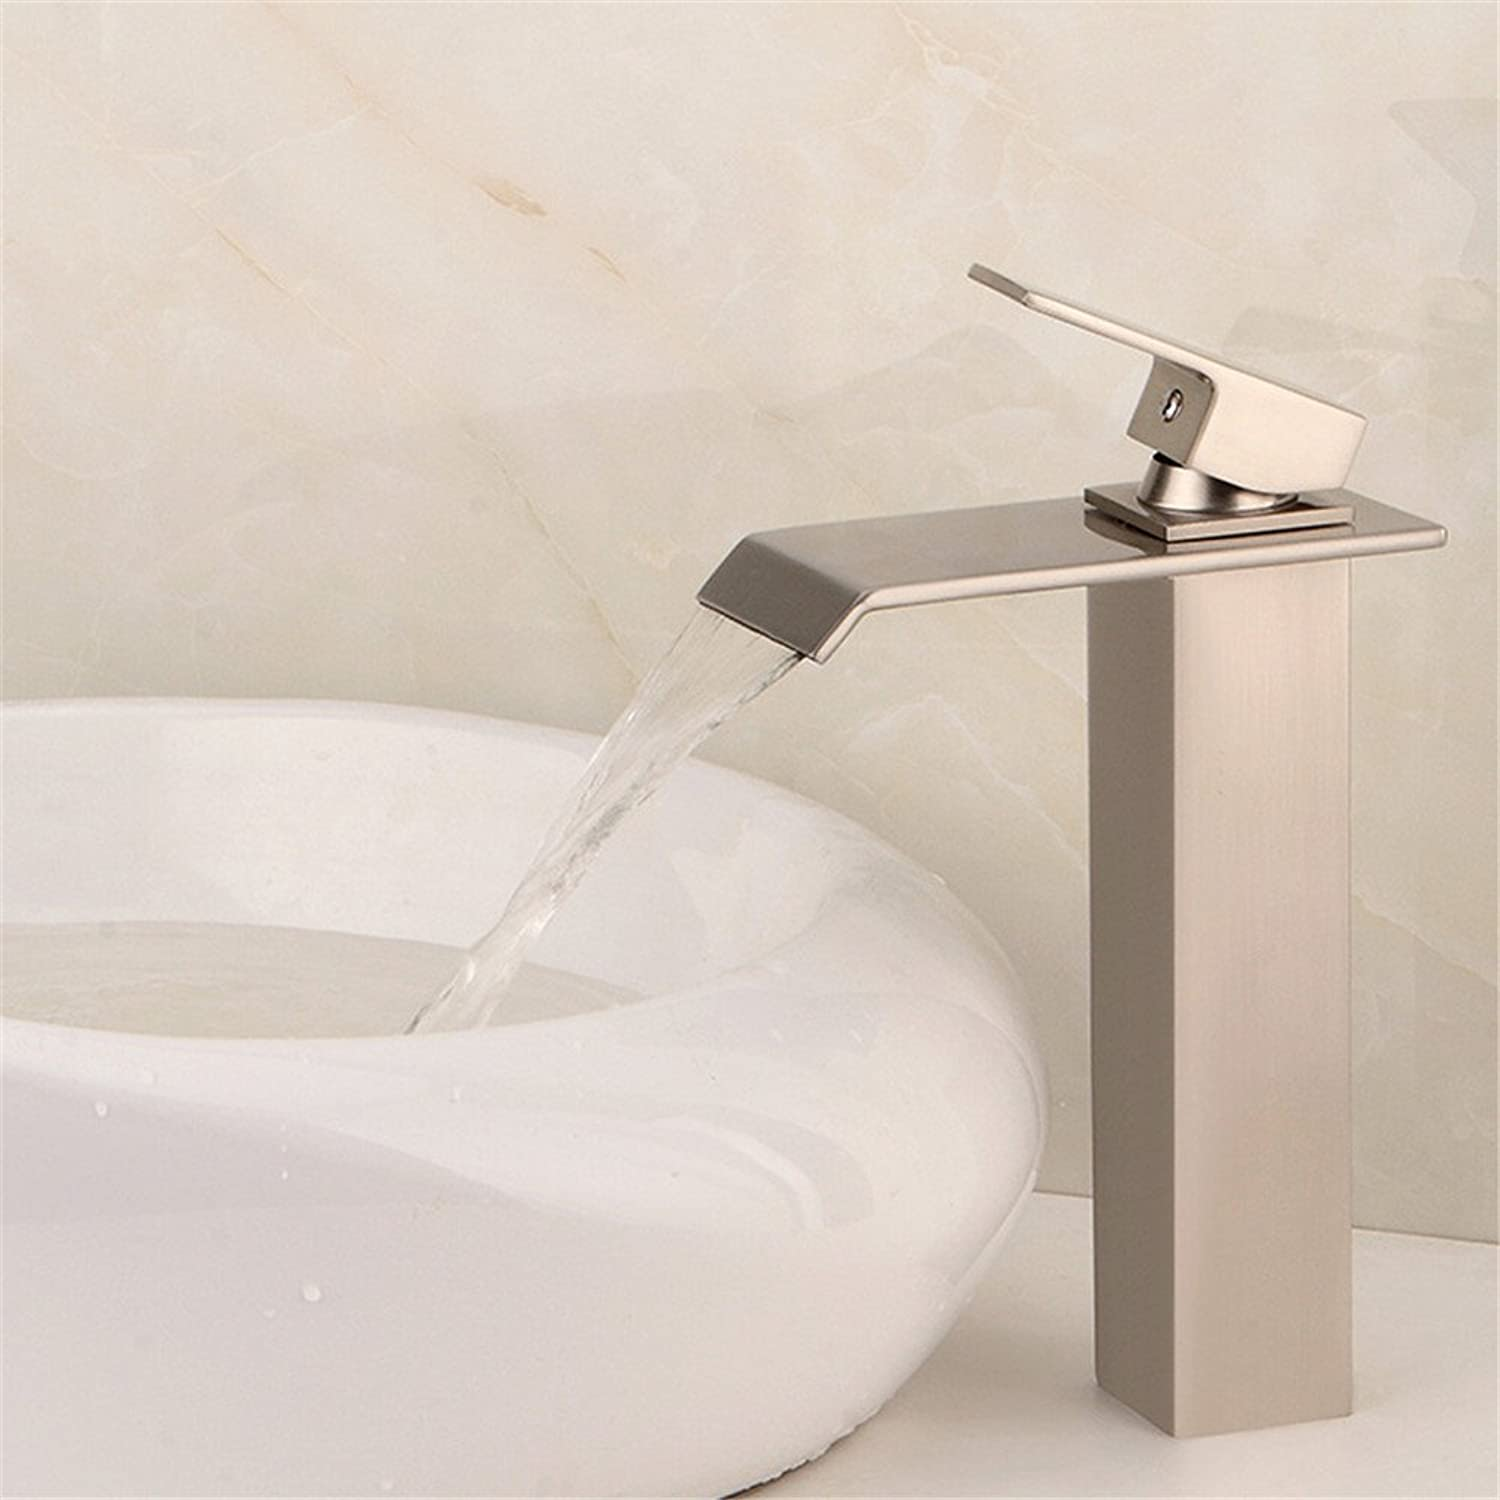 MIAORUI The bathroom counter basin of mixed water brass wire drawing single type washbasin tap water faucet waterfall sanitary ware